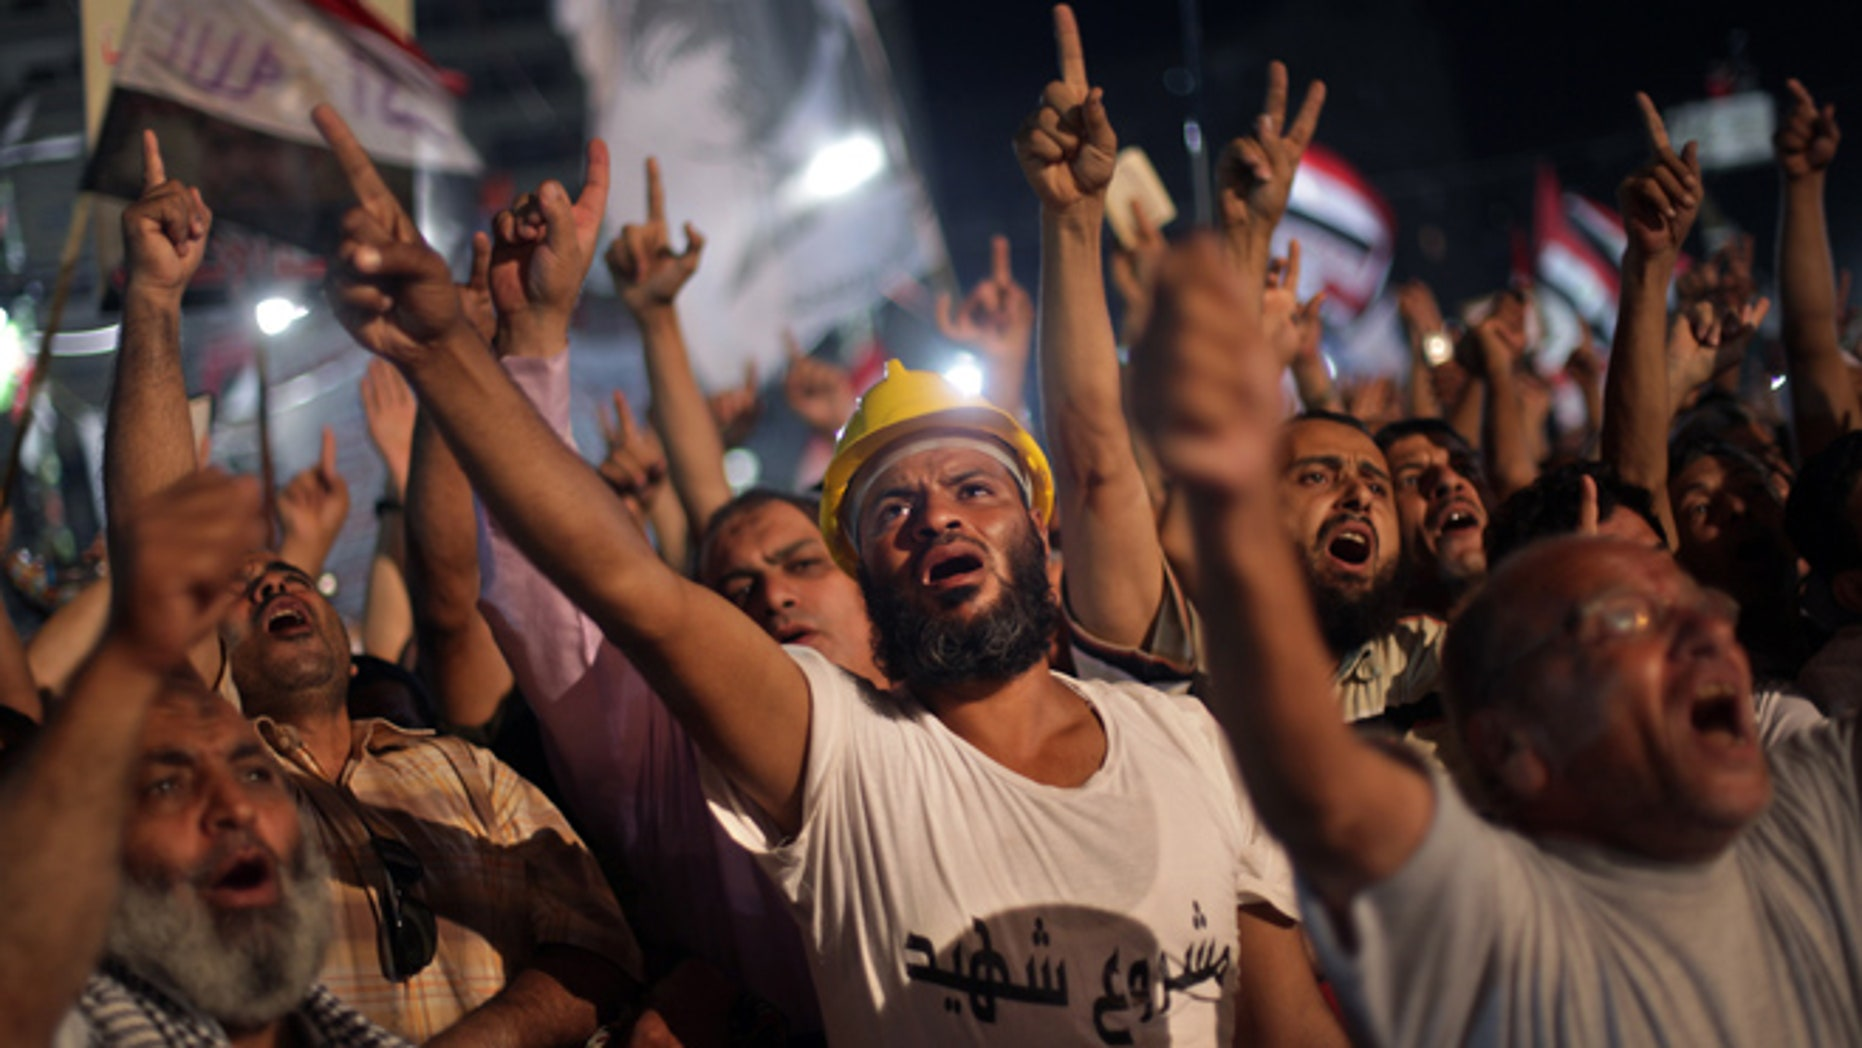 July 31, 2013: Supporters of Egypt's ousted President Mohammed Morsi chant slogans during a protest outside Rabaah al-Adawiya mosque, where they have installed a camp and hold daily rallies at Nasr City, in Cairo, Egypt, Wednesday.